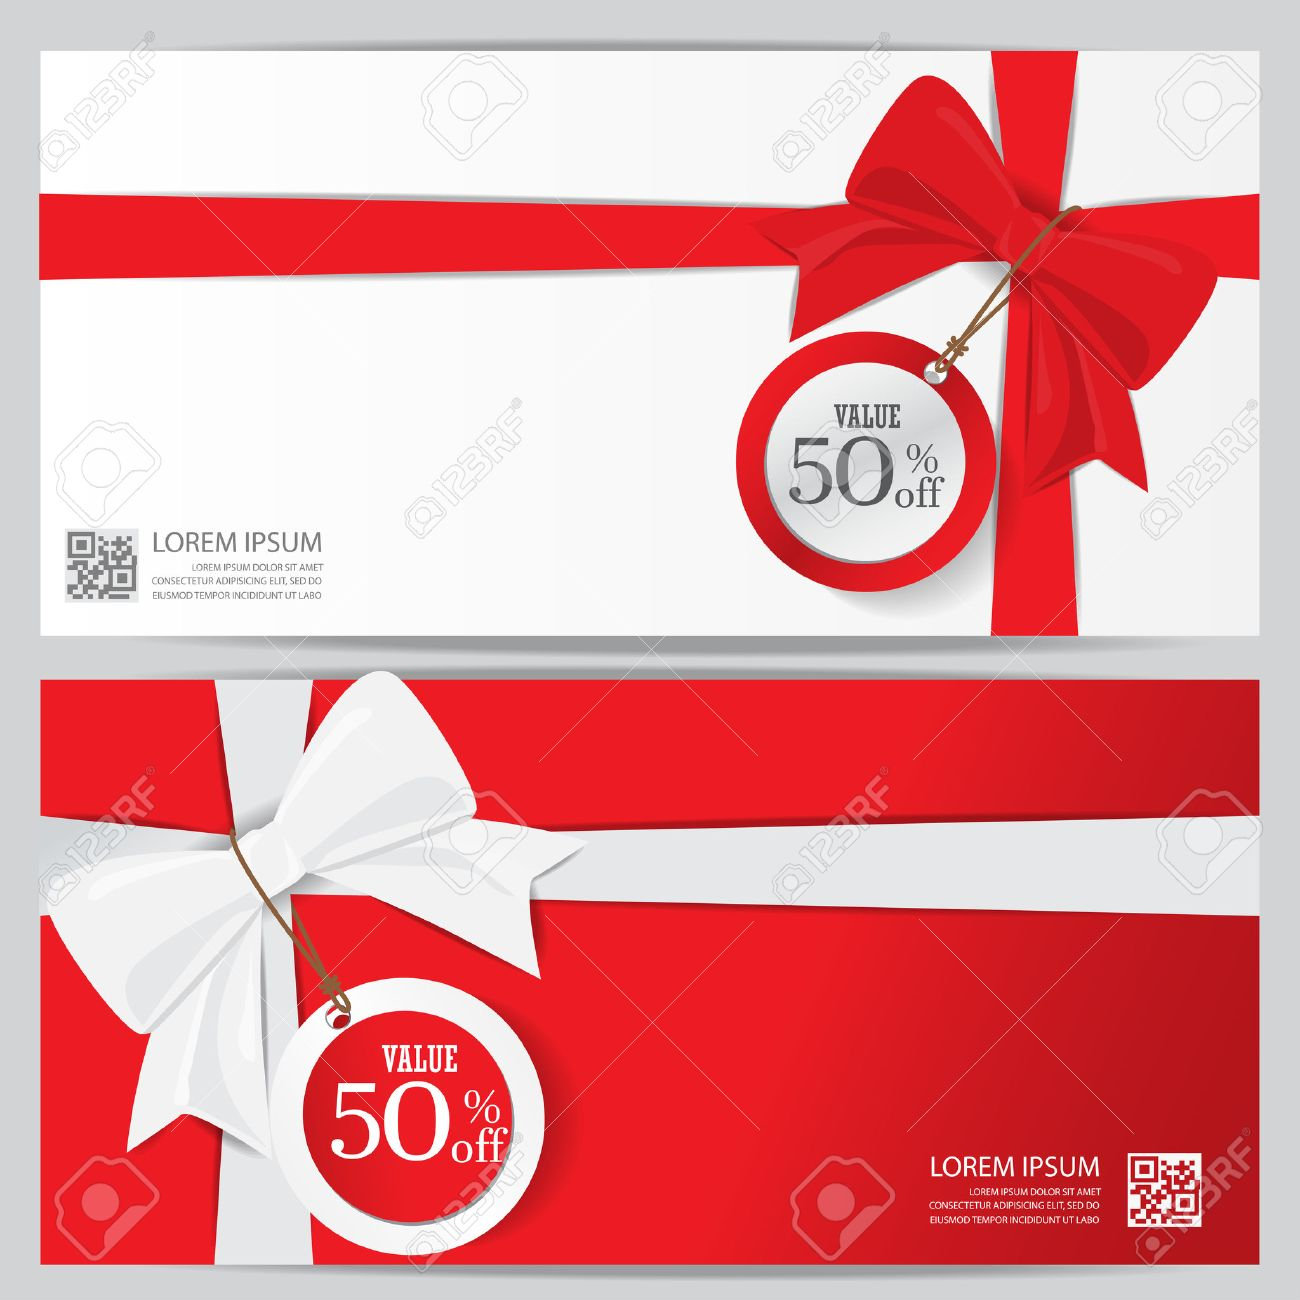 christmas holiday and new year gift voucher certificate coupon template. can be use for business shopping card, customer sale and promotion, layout, banner, web design. vector illustration - 47885981